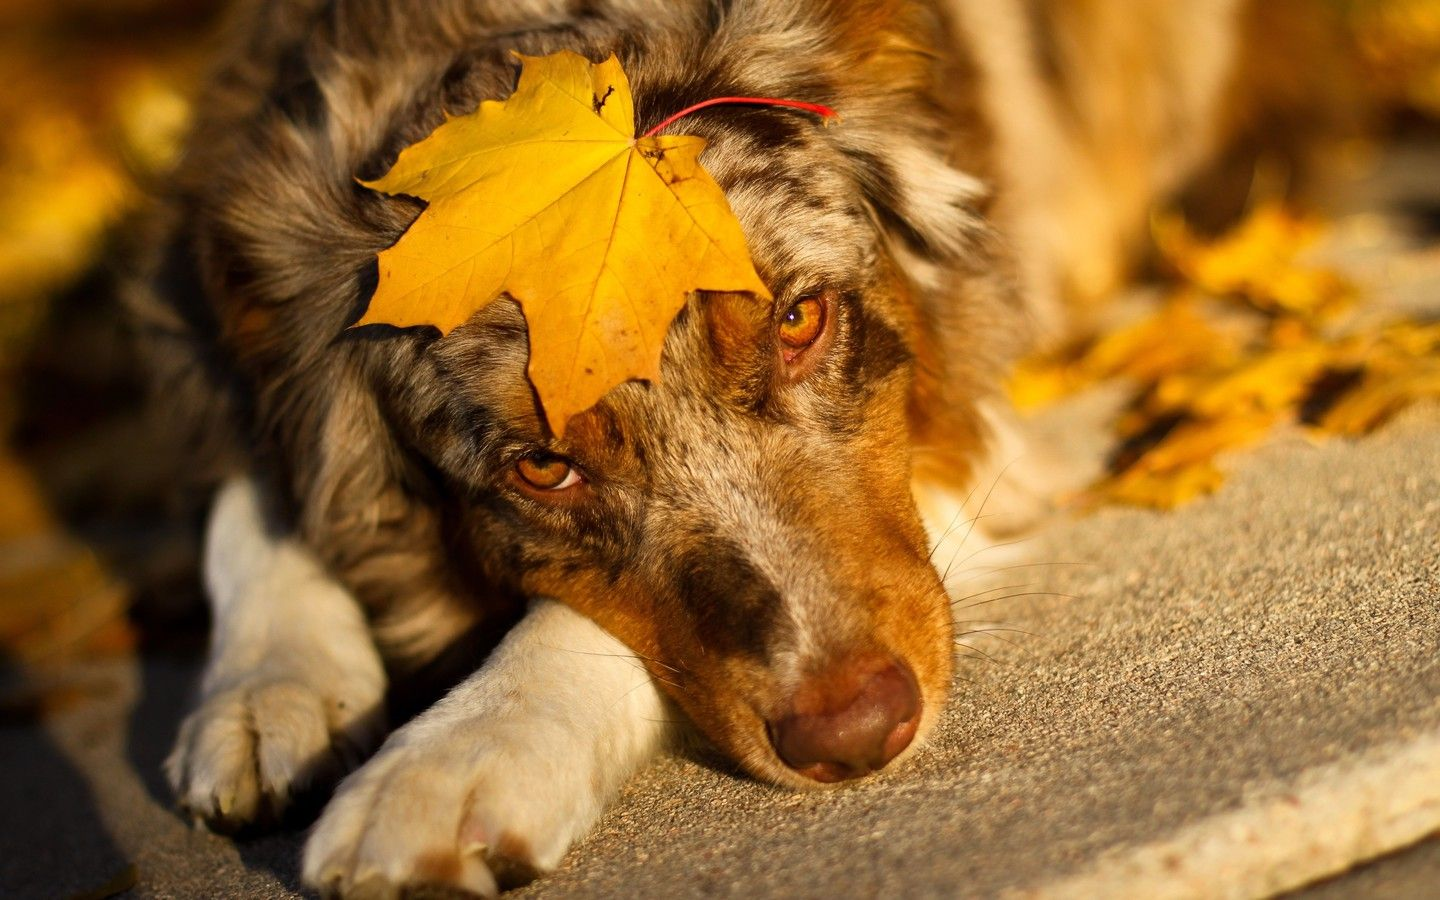 Dog wallpapers 1080p firefox wallpaper free download